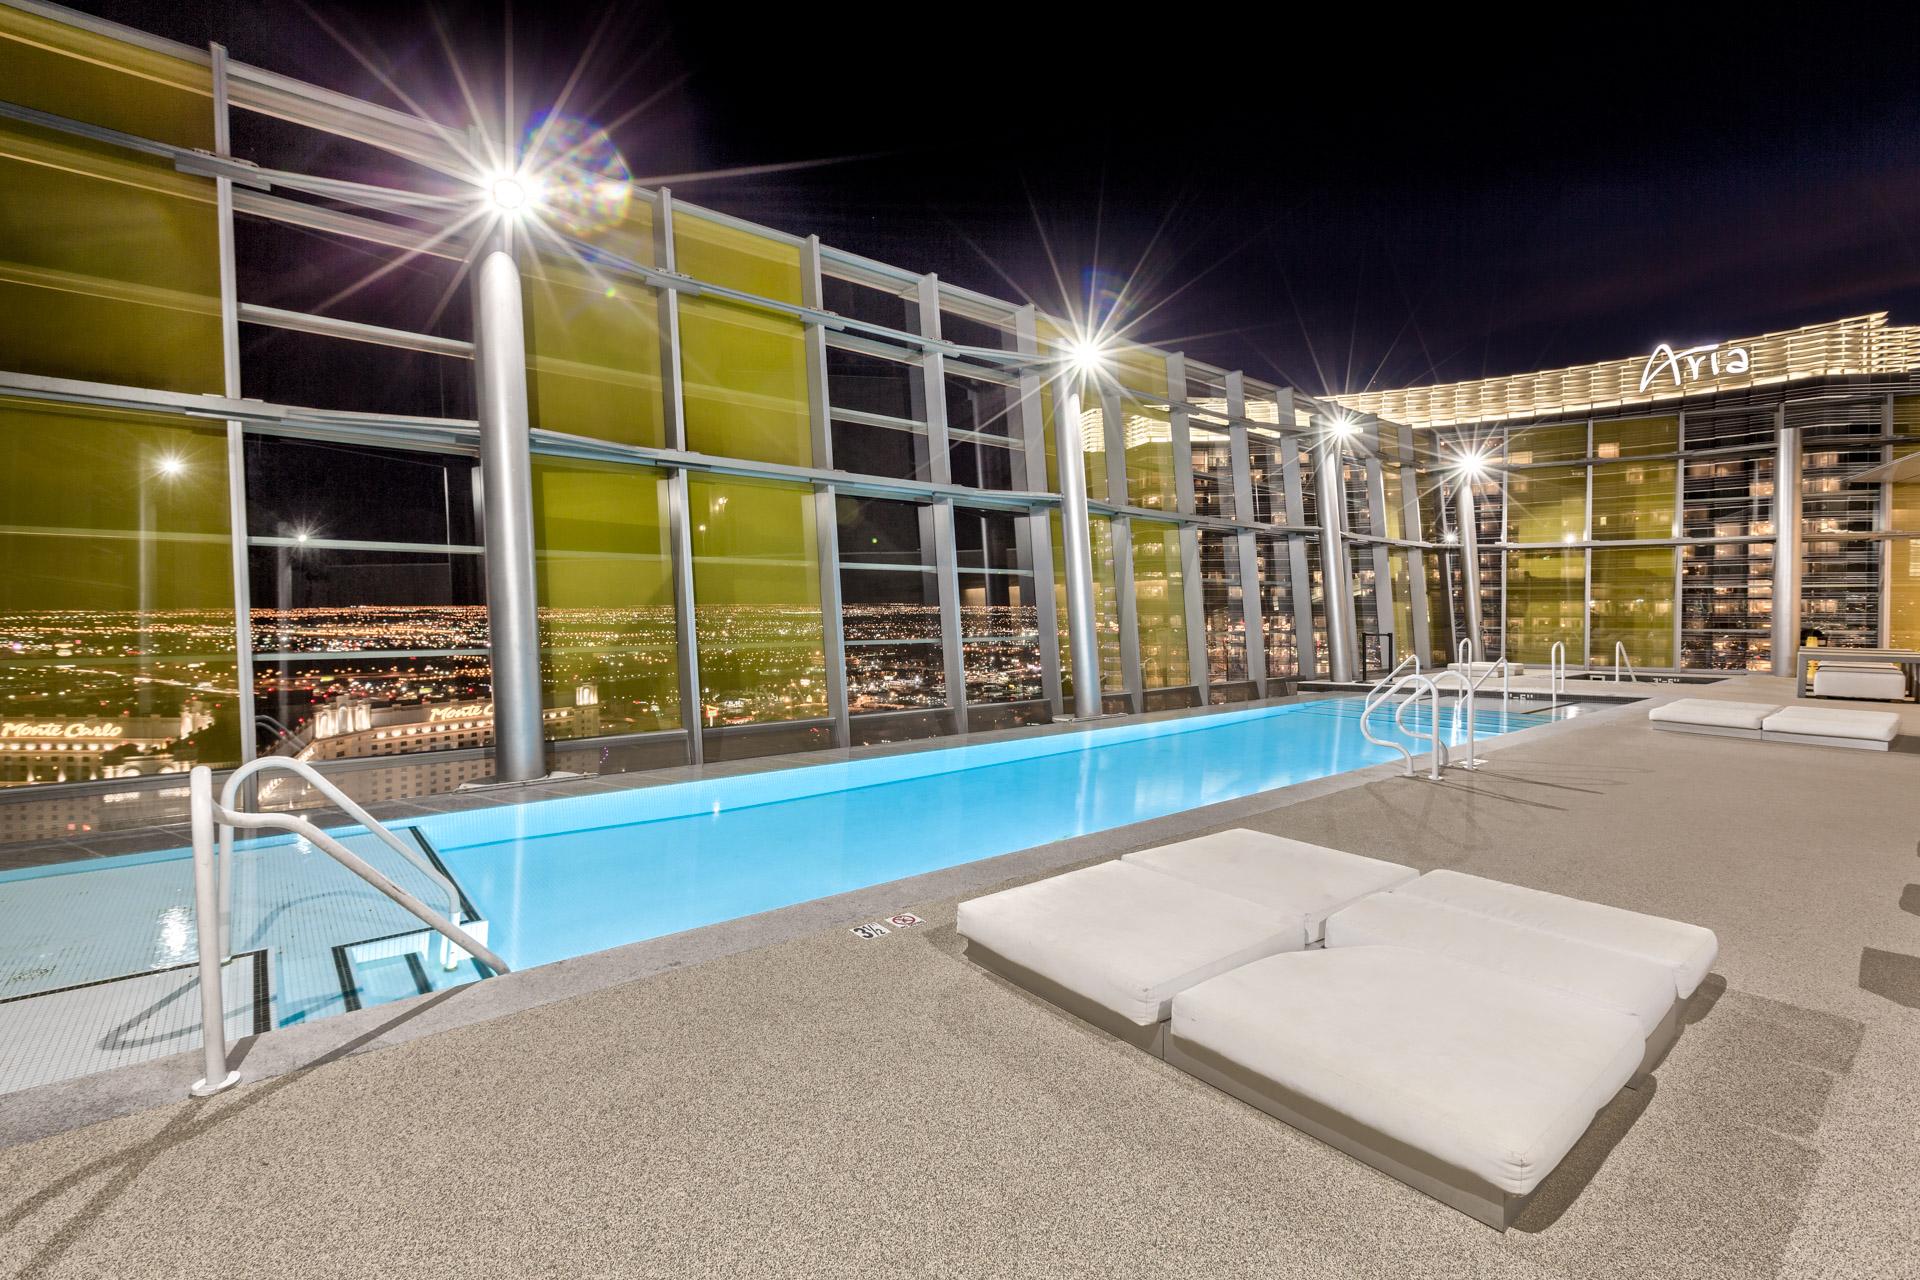 Las-Vegas-Luxury-Condos-For-Sale-Priced-From-$1Million-$2-Million-Veer-Towers-Unit-2809